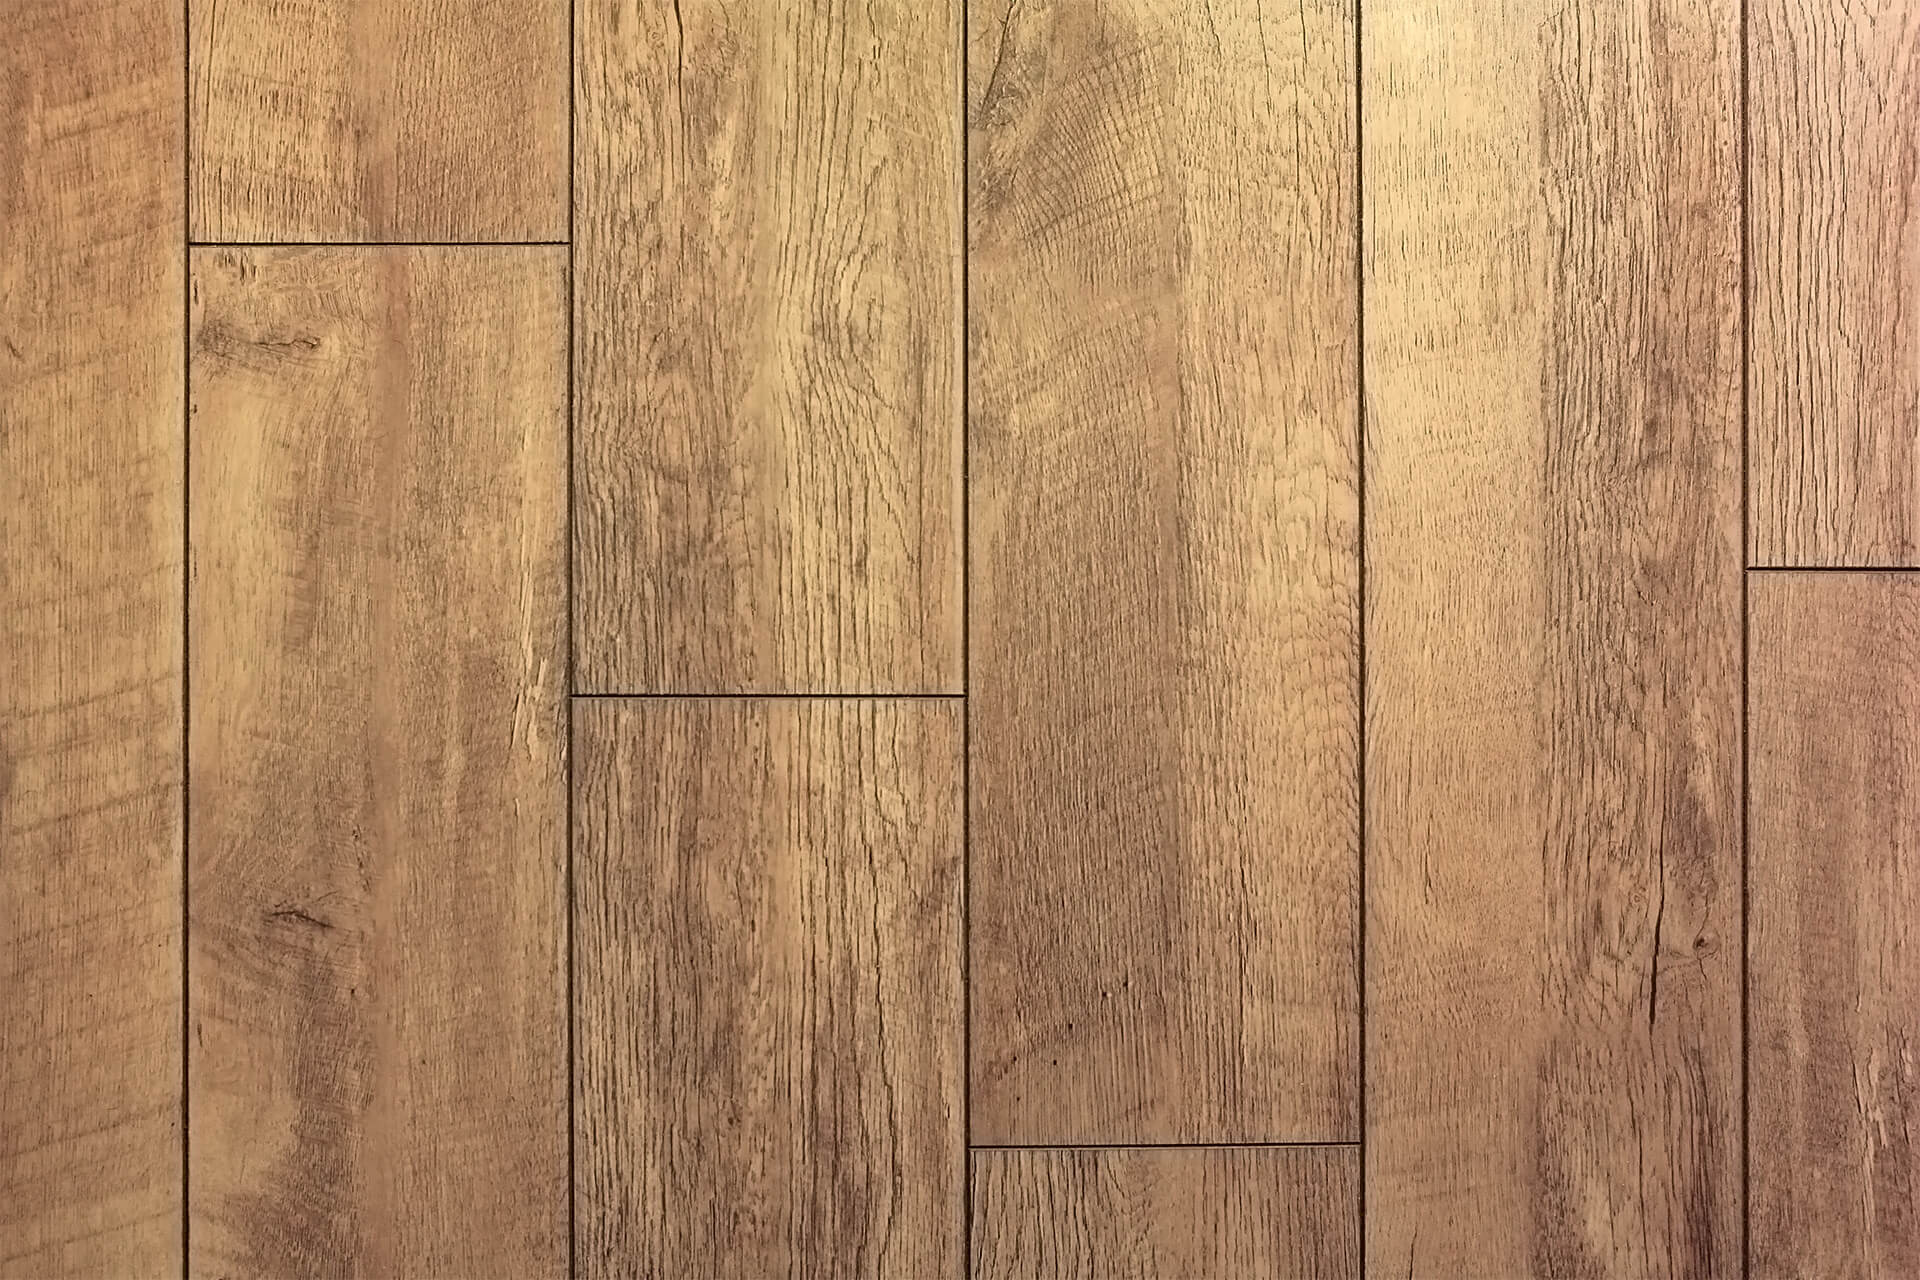 Parquet Flooring. Description, Review, Choosing Advice. Natural look of the wooden structure